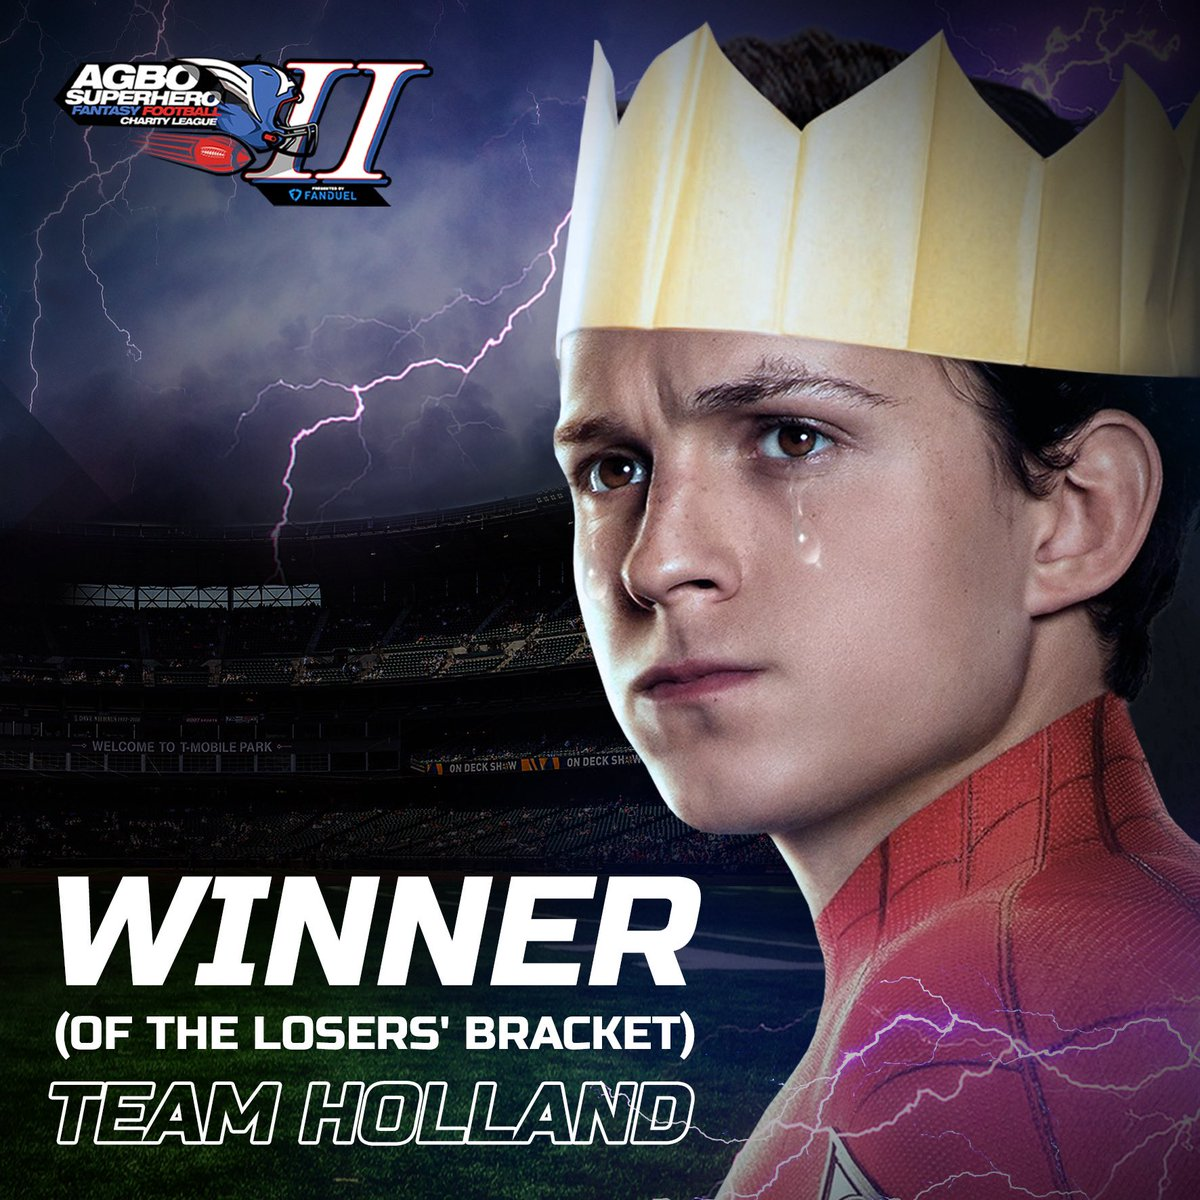 It's Peter. Hey, I won.   Your friendly neighborhood Spider-Man swooped in as MVP of the Losers' Bracket on FanDuel this weekend🕷🤴🏻🏆 @TomHolland1996 @Tbrotherstrust   #AGBOSuperheroLeague presented by @FanDuel